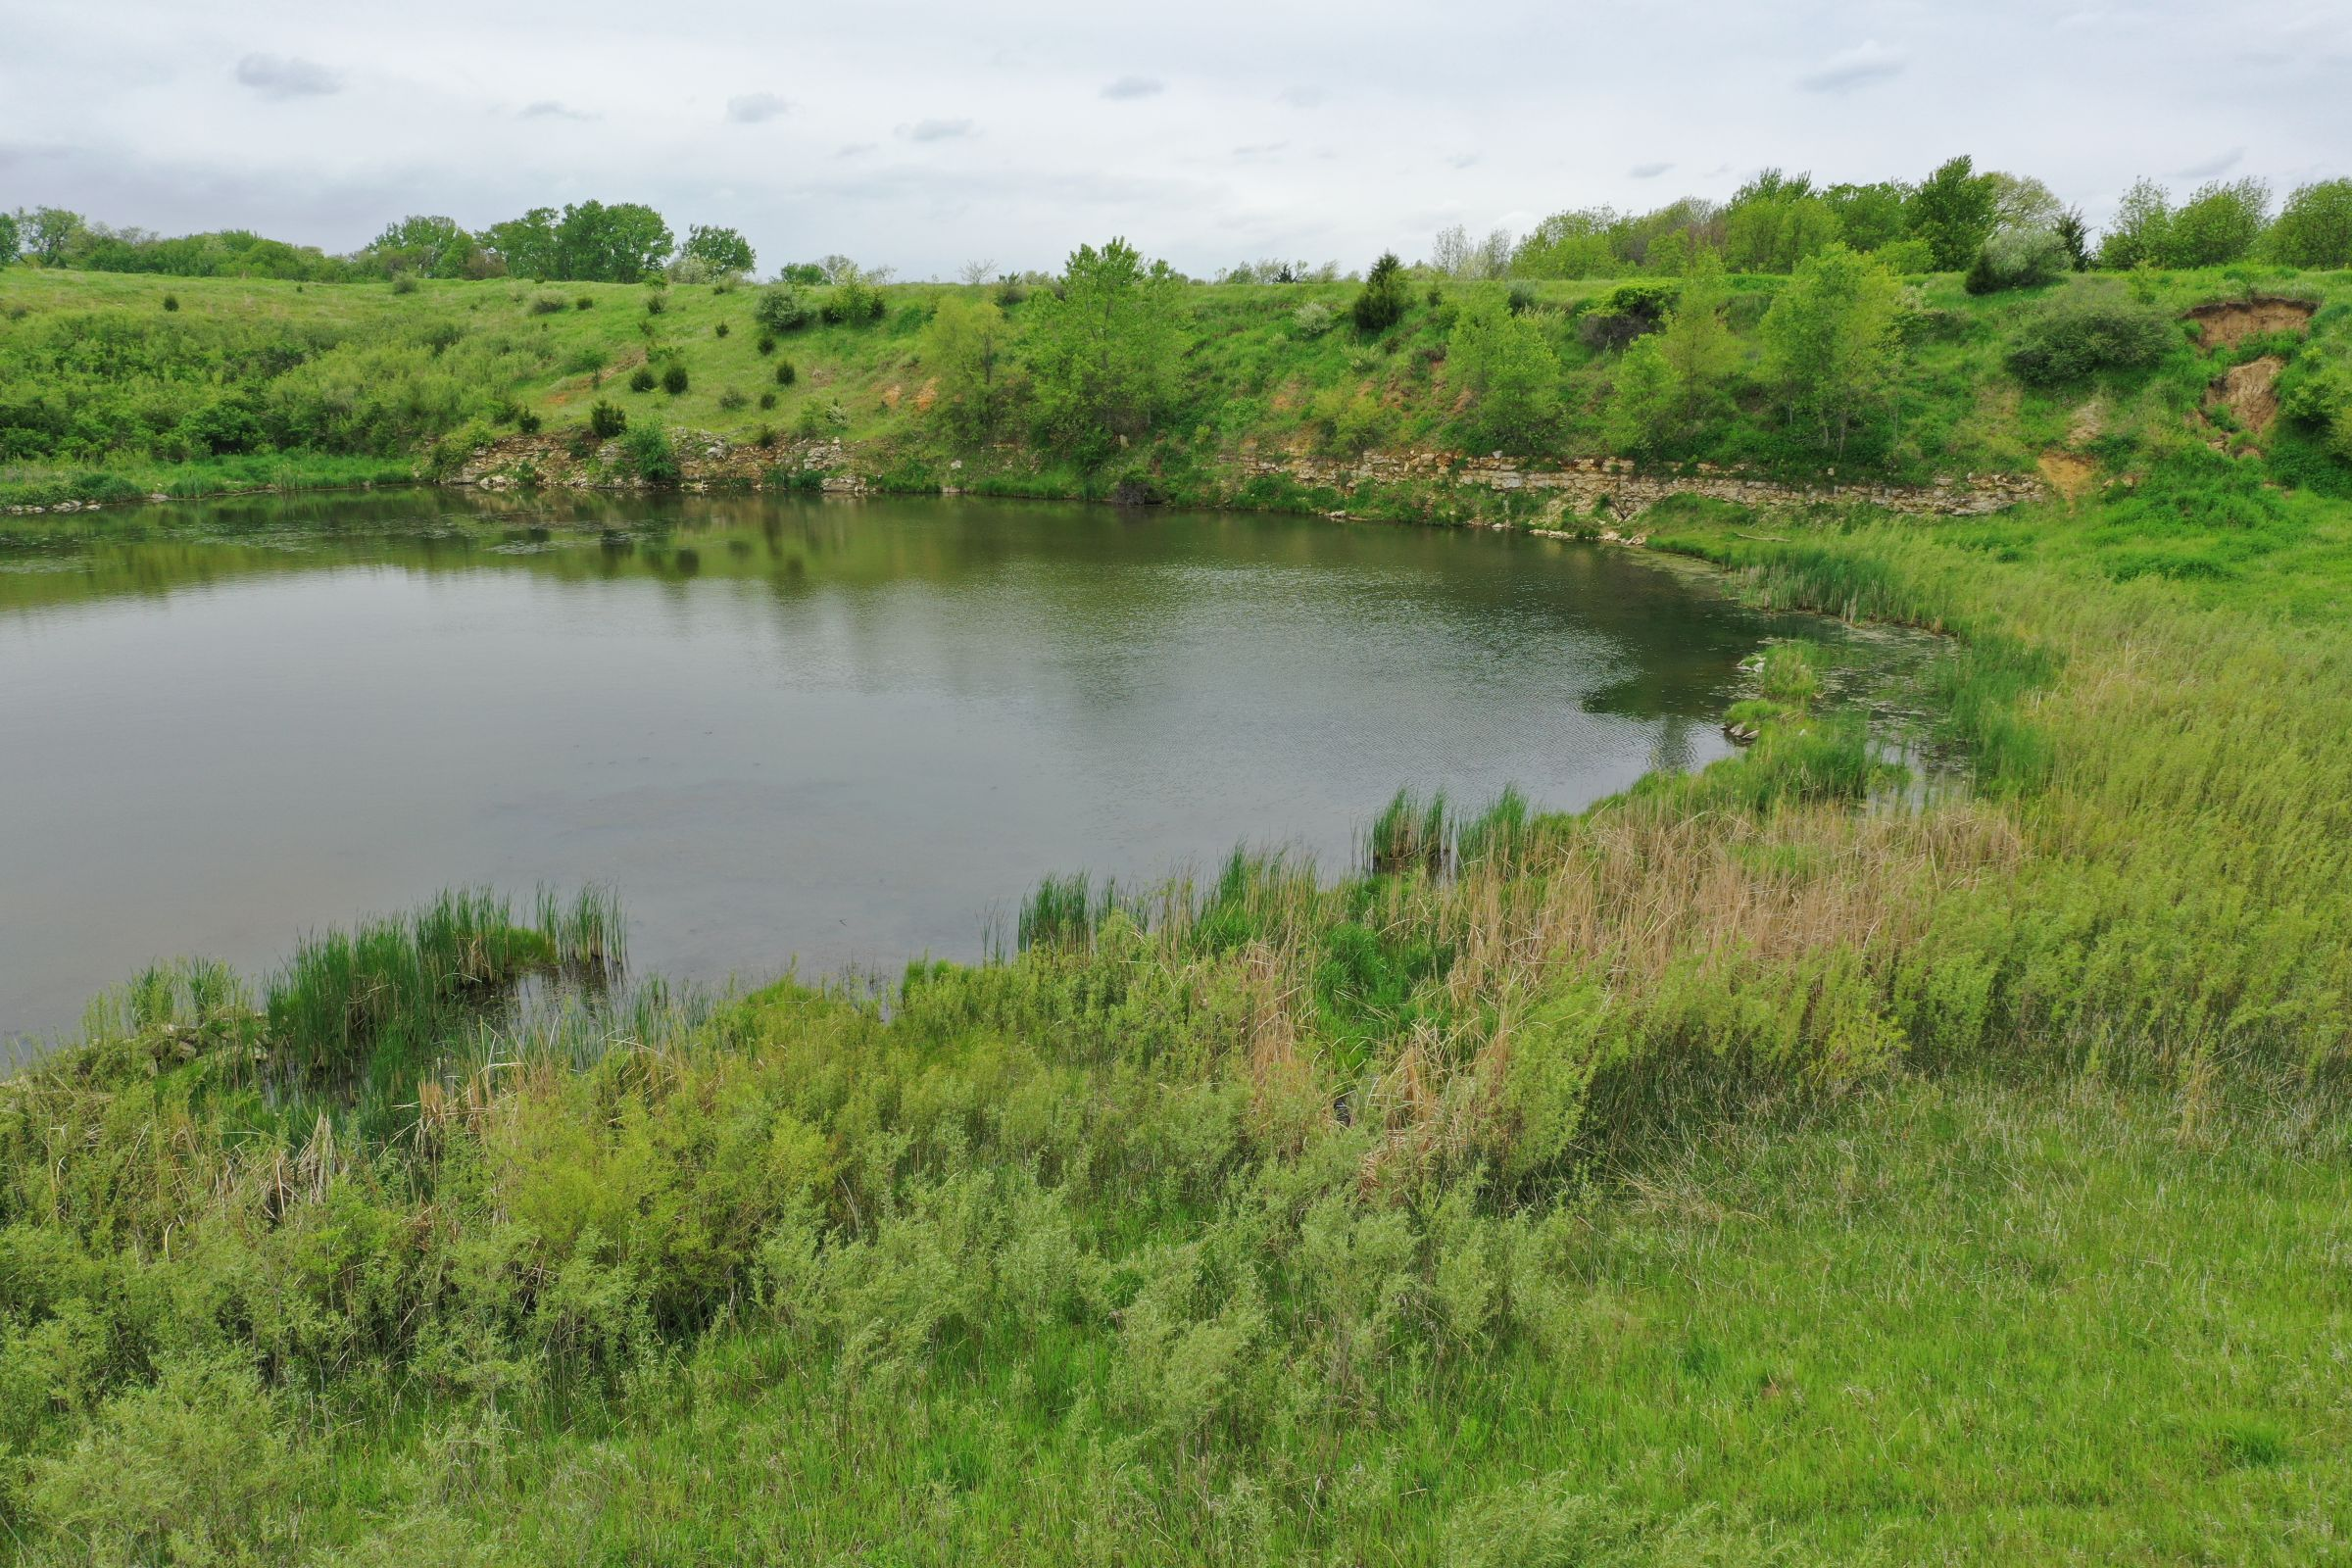 land-dallas-county-iowa-51-acres-listing-number-14894-0-2020-05-27-153314.JPG